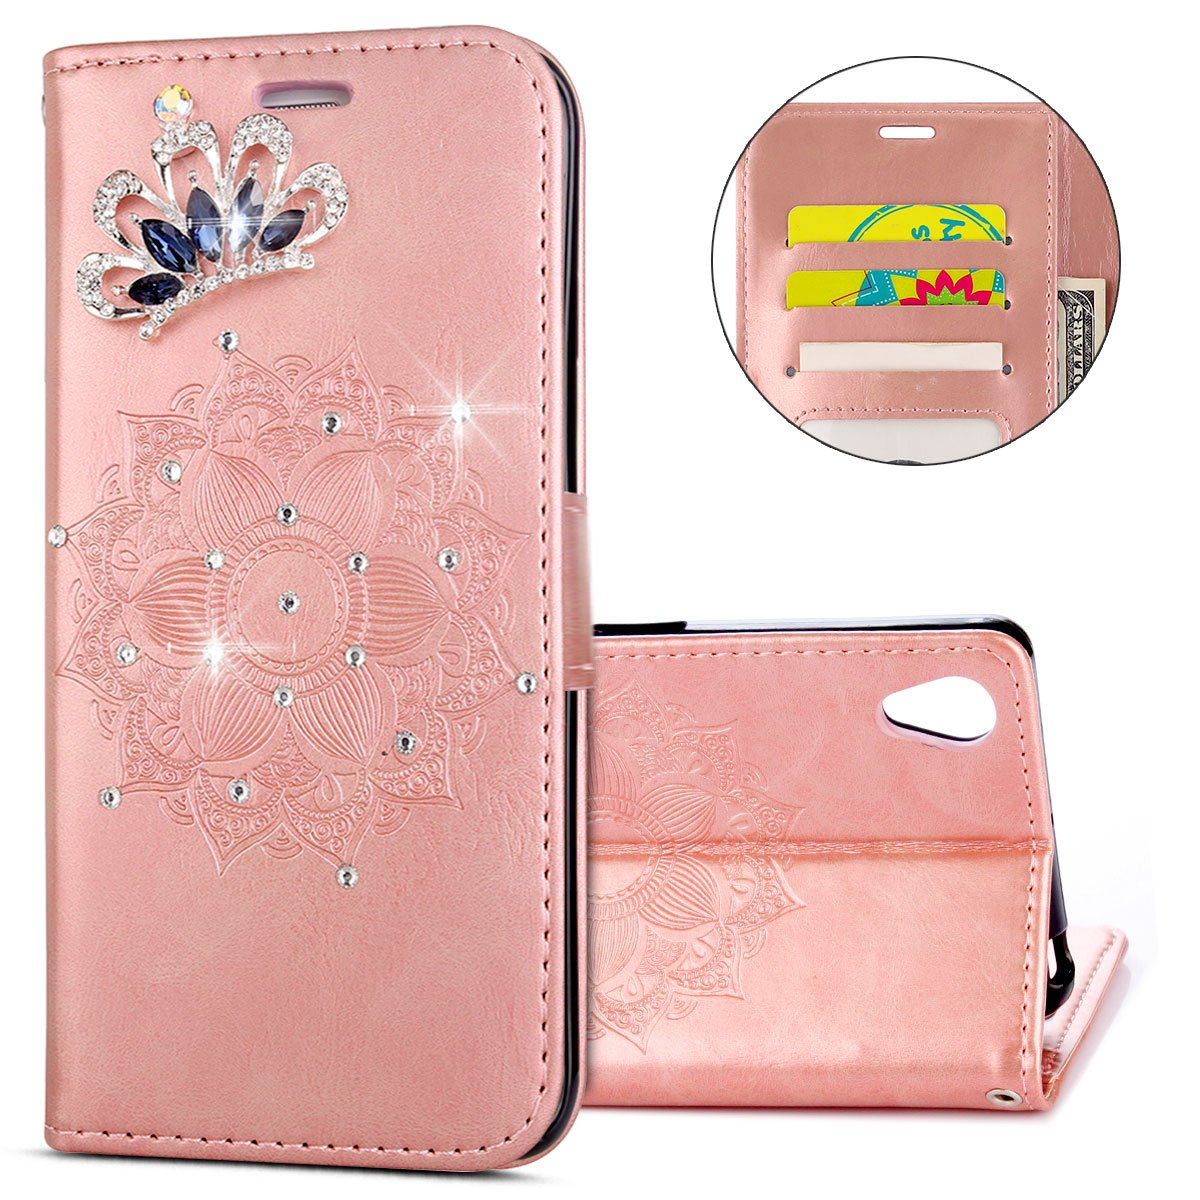 IKASEFU Sony Xperia X Case,Clear Crown Rhinestone Diamond Bling Glitter Wallet with Card Holder Emboss Mandala Floral Pu Leather Magnetic Flip Case Protective Cover for Sony Xperia X,Rosa Gold